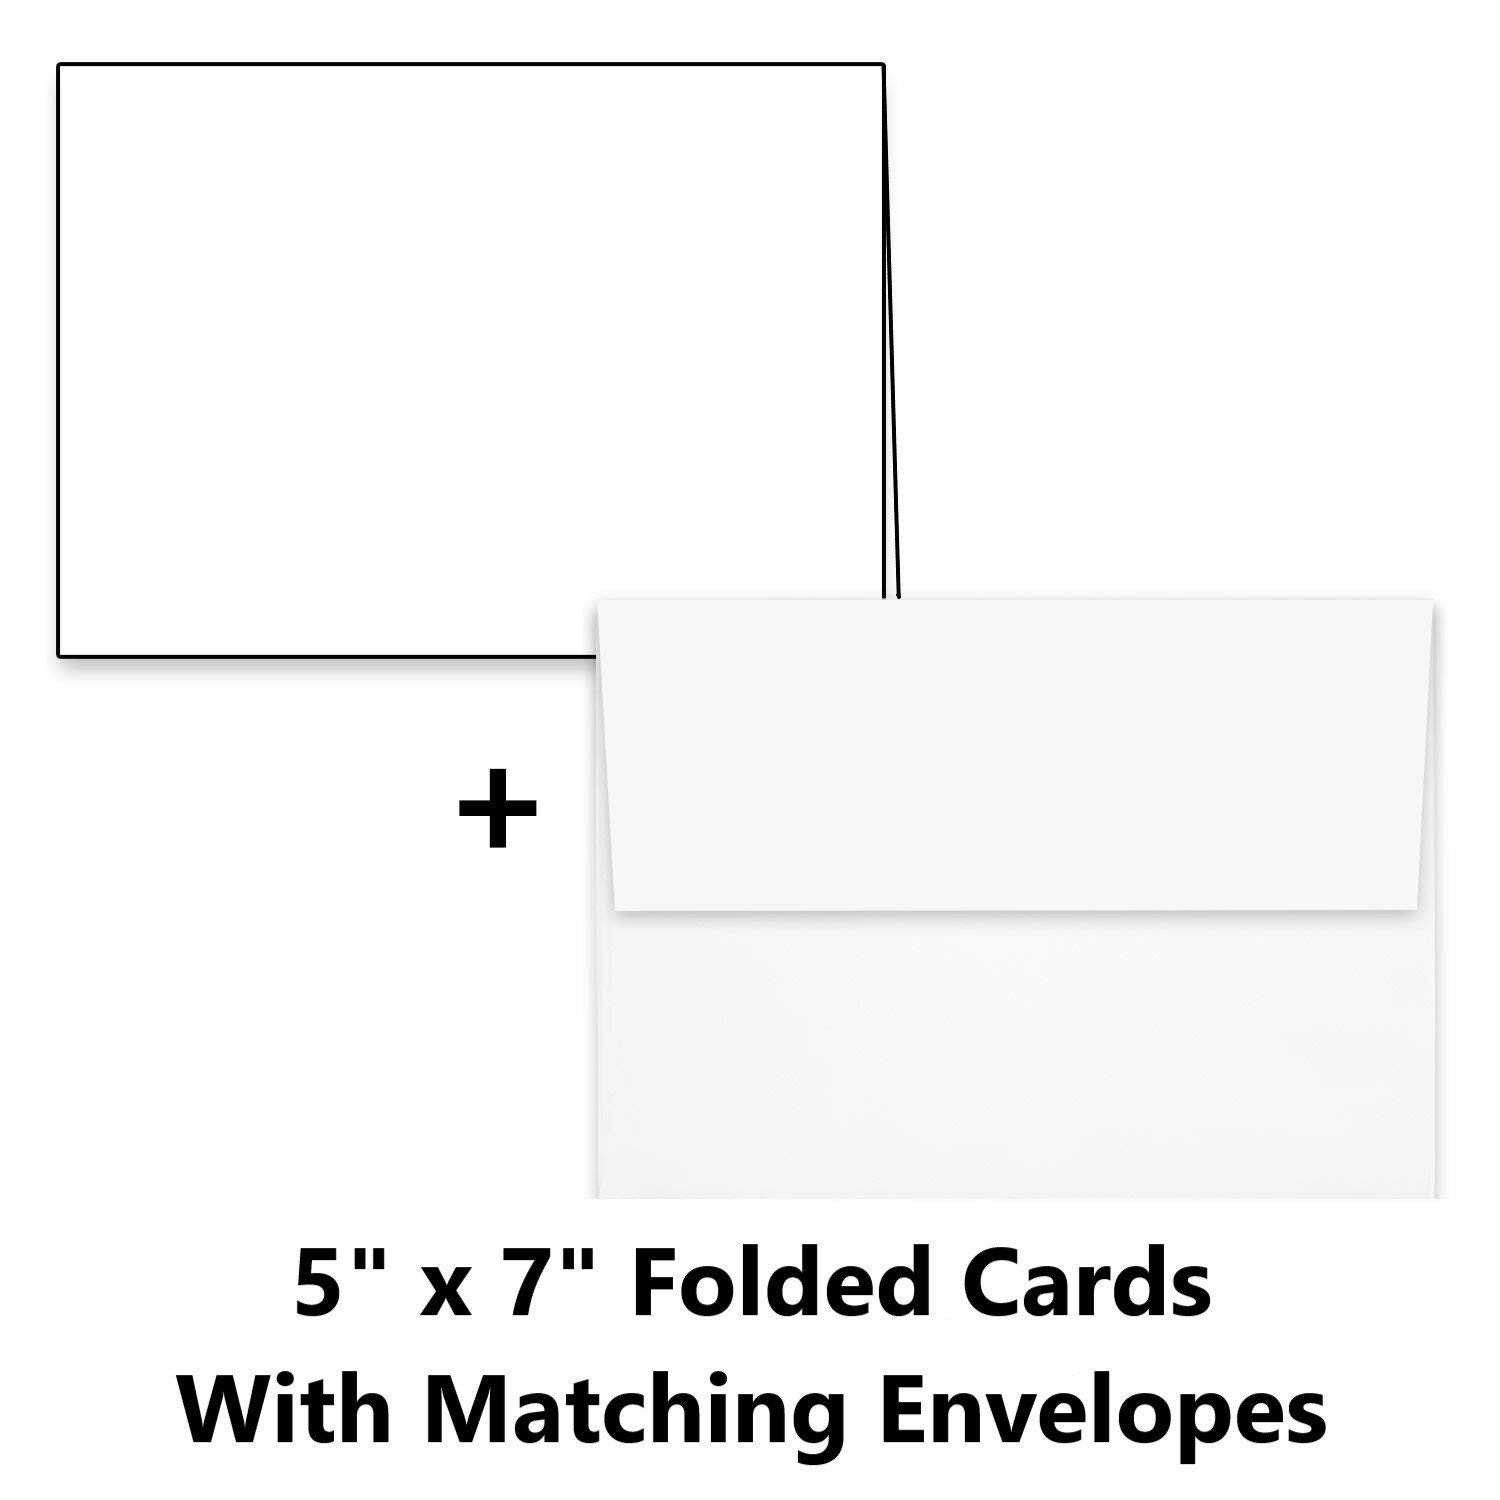 "Hamilco White Cardstock Thick Paper - 5 x 7"" Blank Folded Cards - Greeting Invitations Stationary - Heavy weight 80 lb Card Stock for Printer - 100 Pack (100 Pack - with Envelopes)"